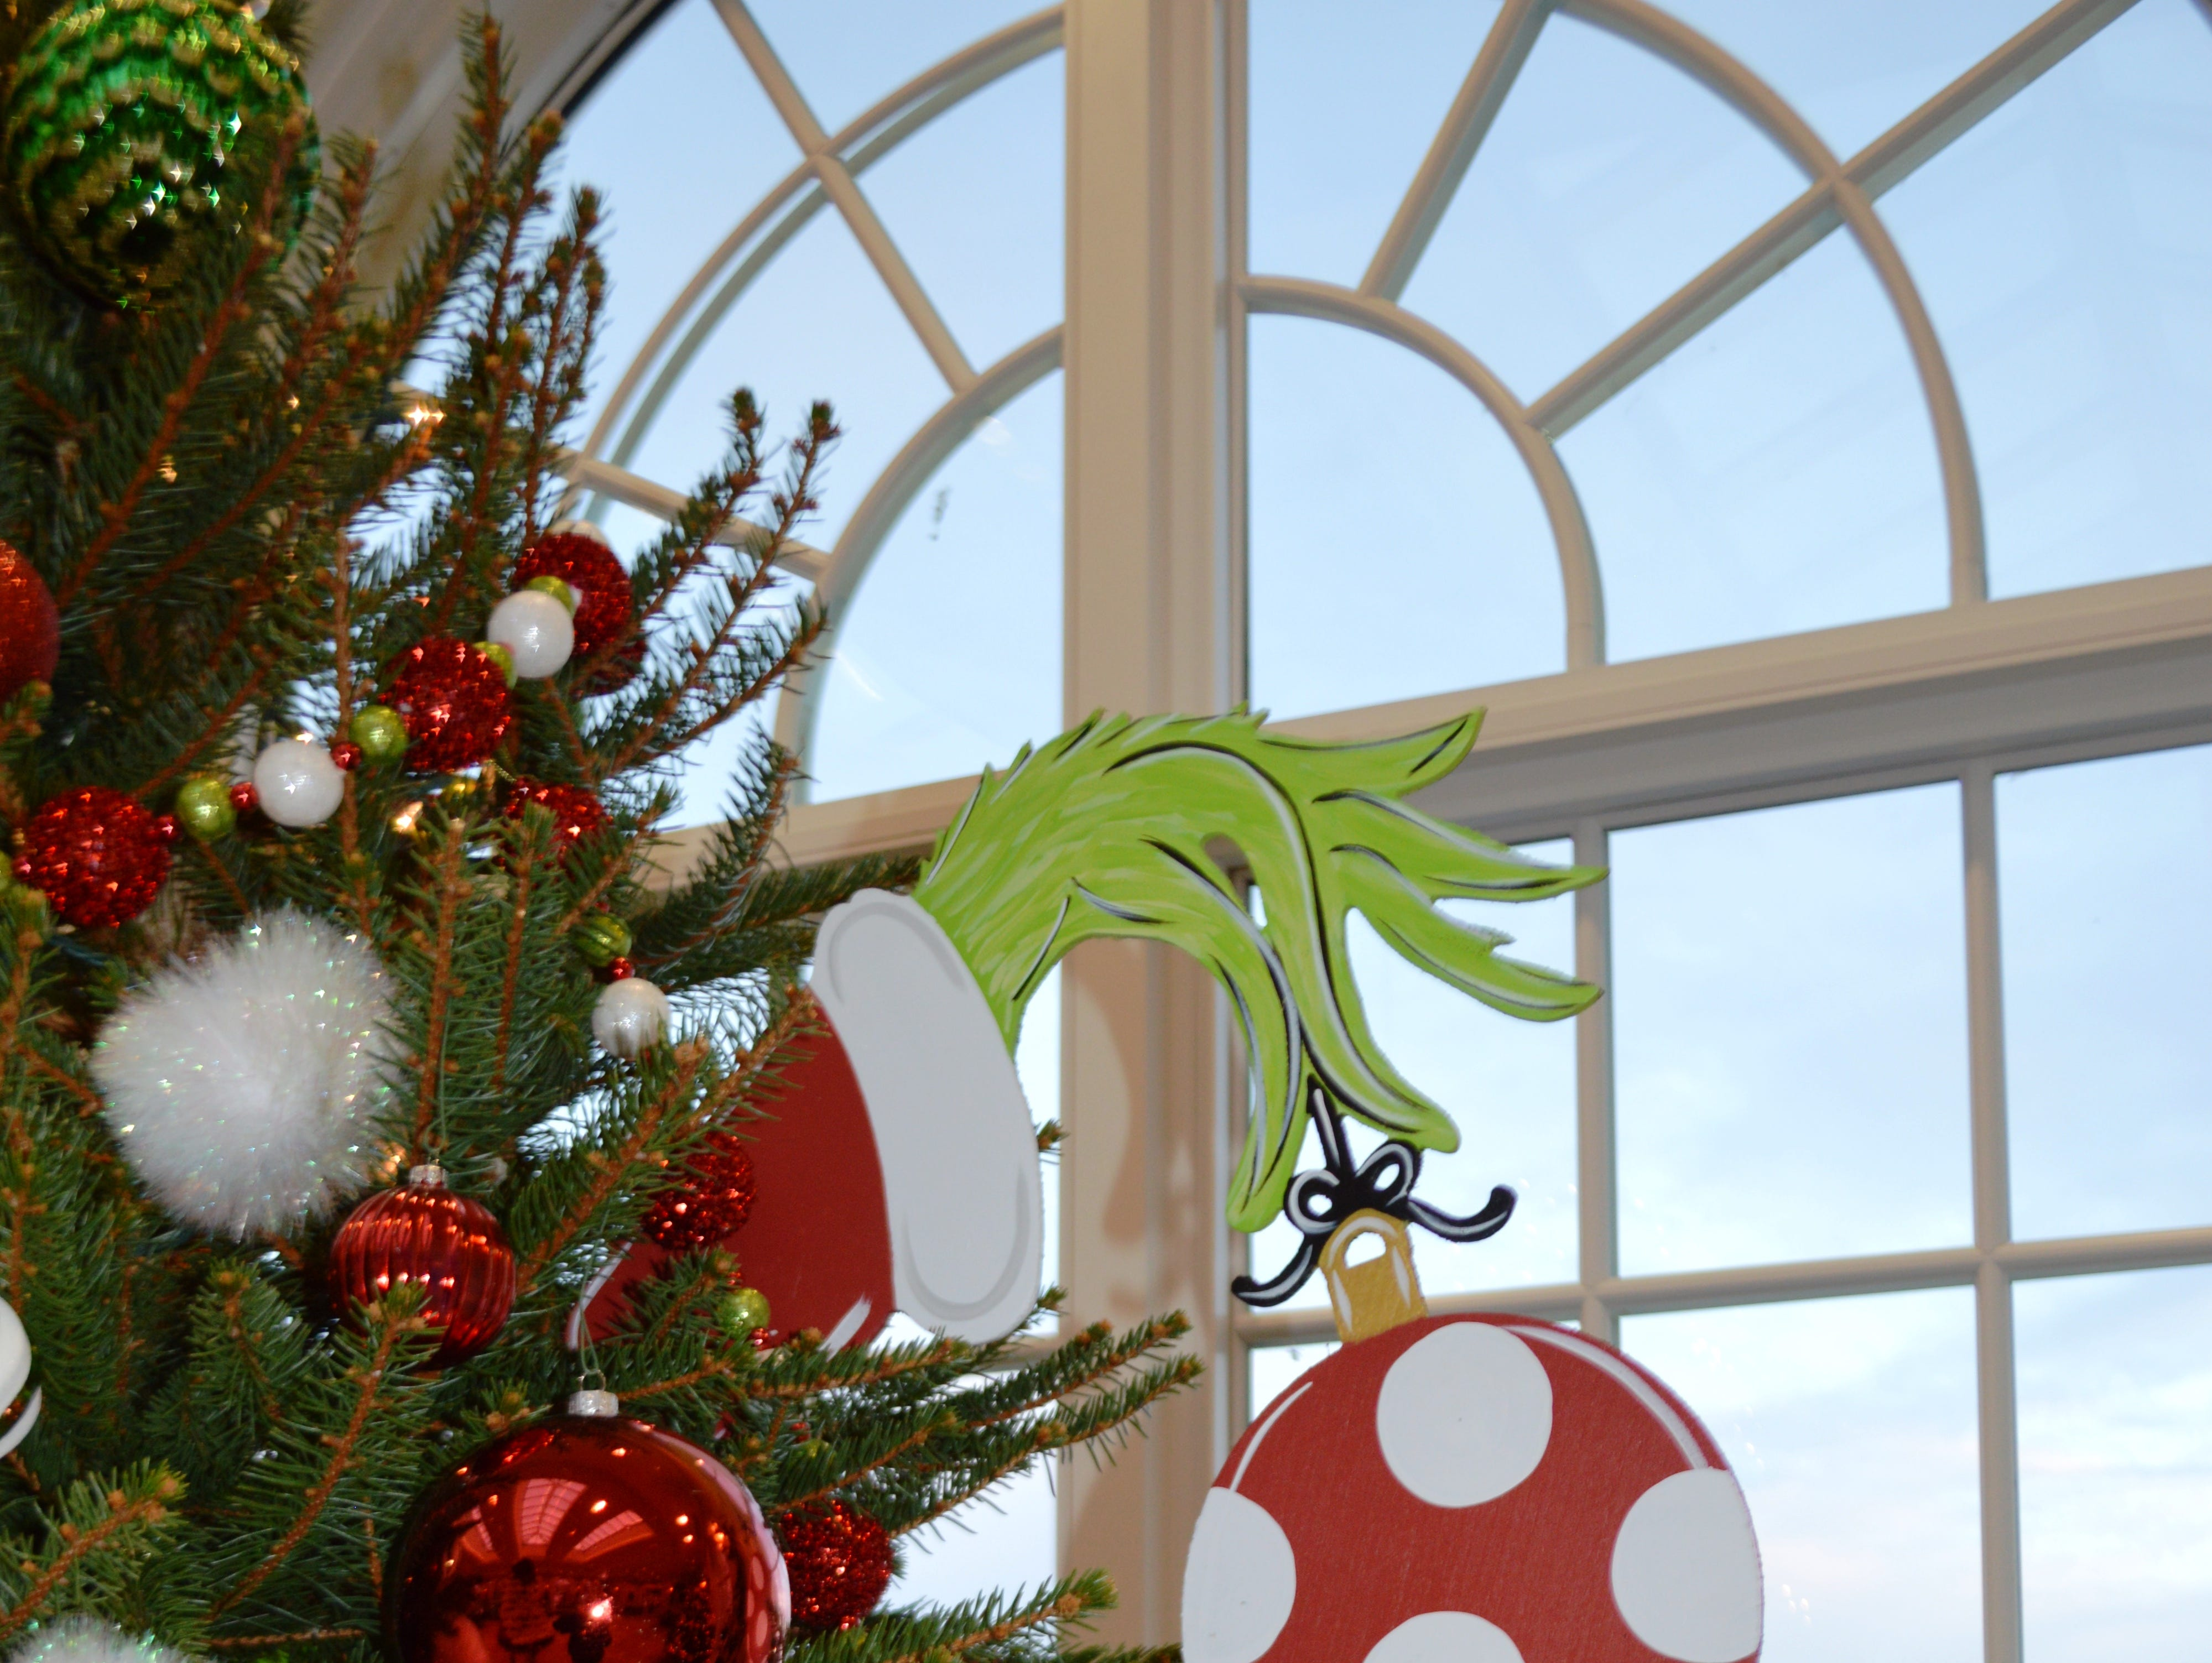 Rhapsody in Bloom from Palmyra is one of the floral designers featured at The Christmas Tree Showcase. Their tree is based on The Grinch Who Stole Christmas.